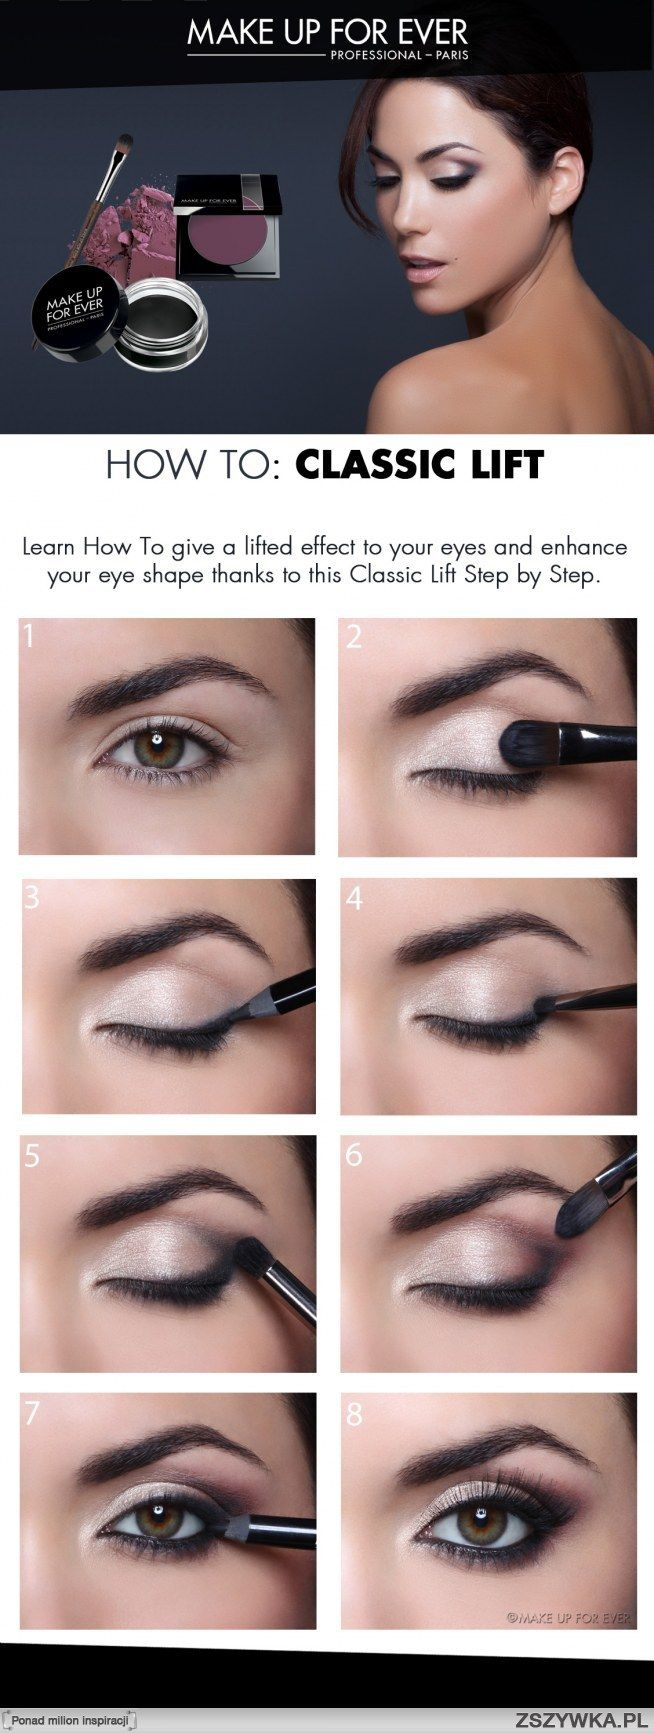 Professional Makeup Artist 11 01 11: Professional Natural Makeup Tutorial